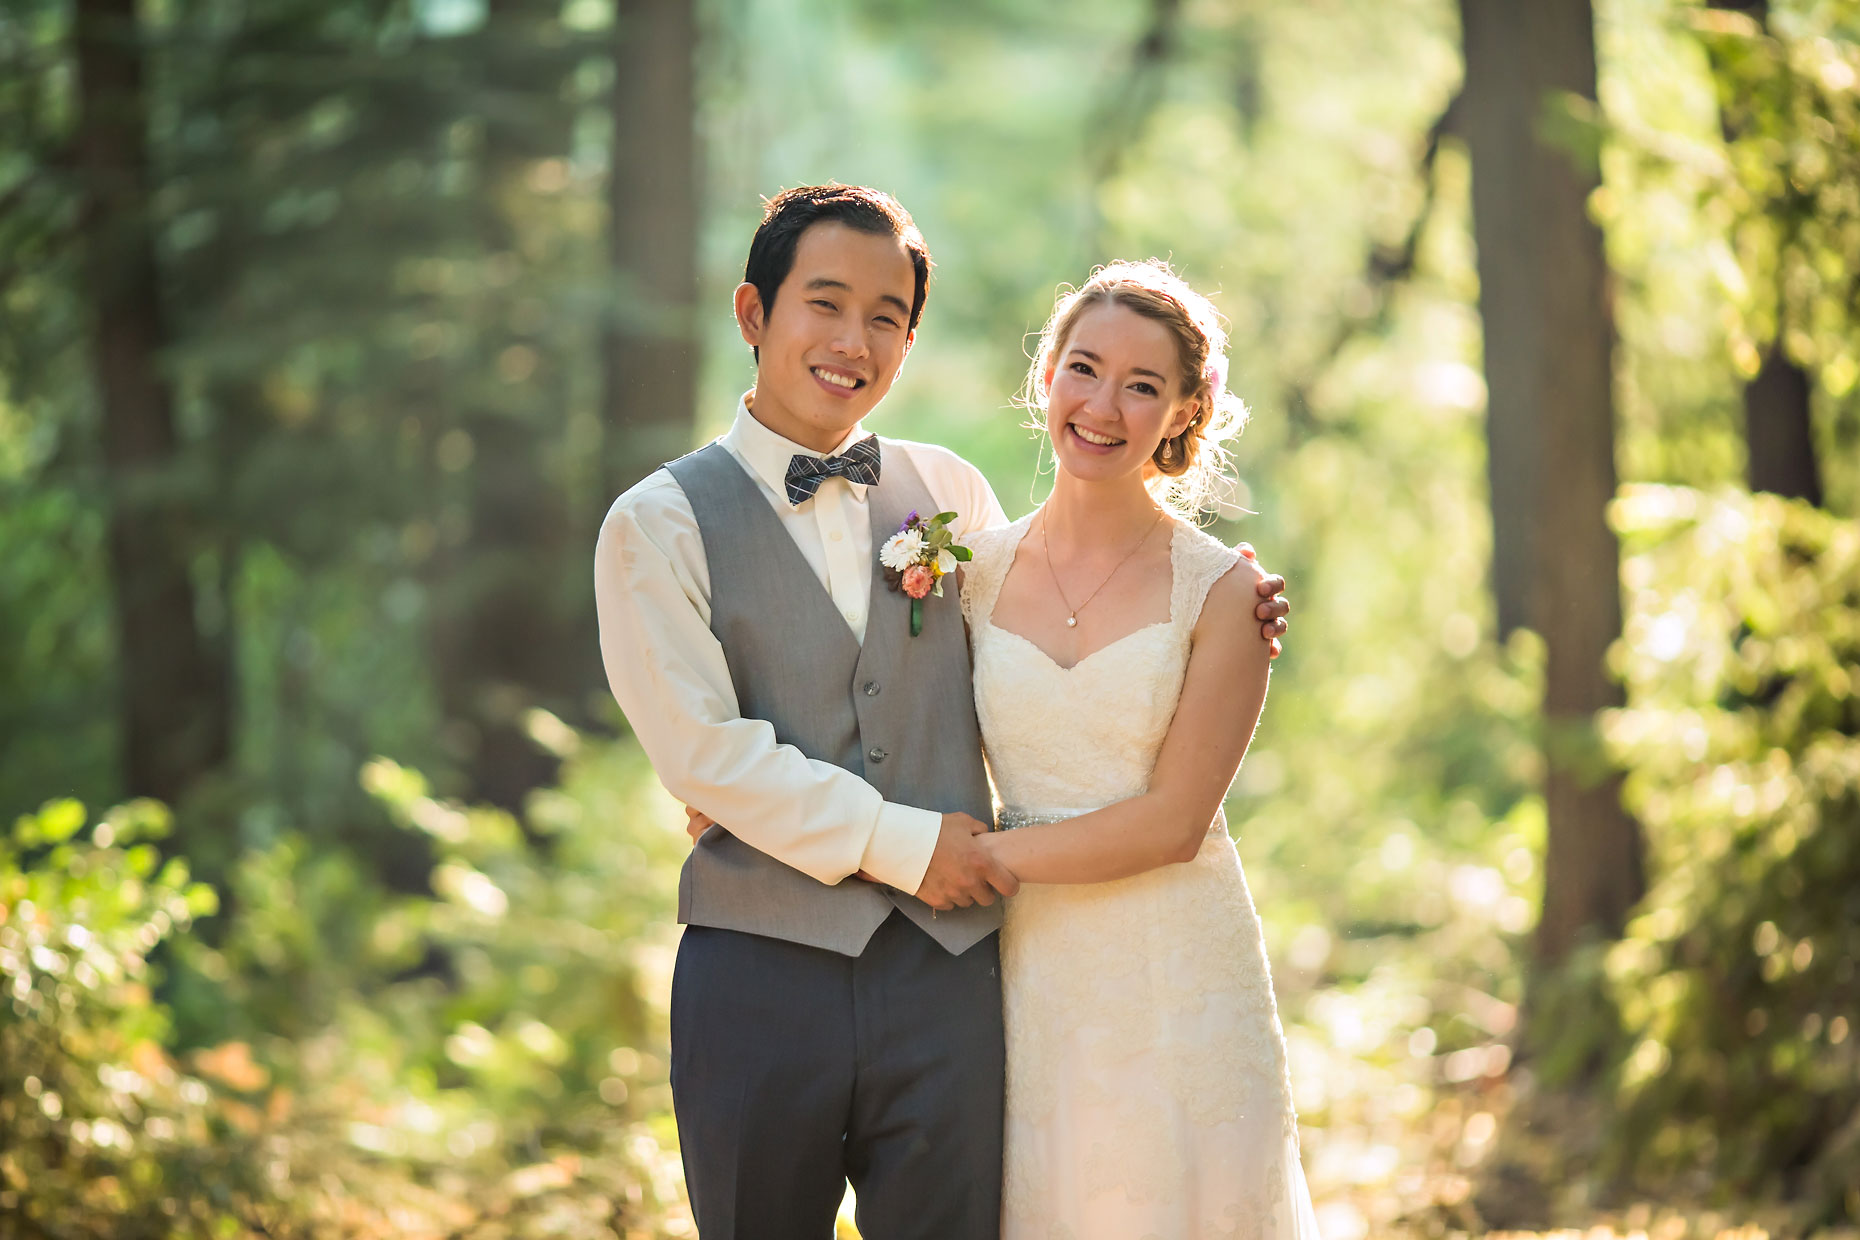 Nevada City wedding photographer.